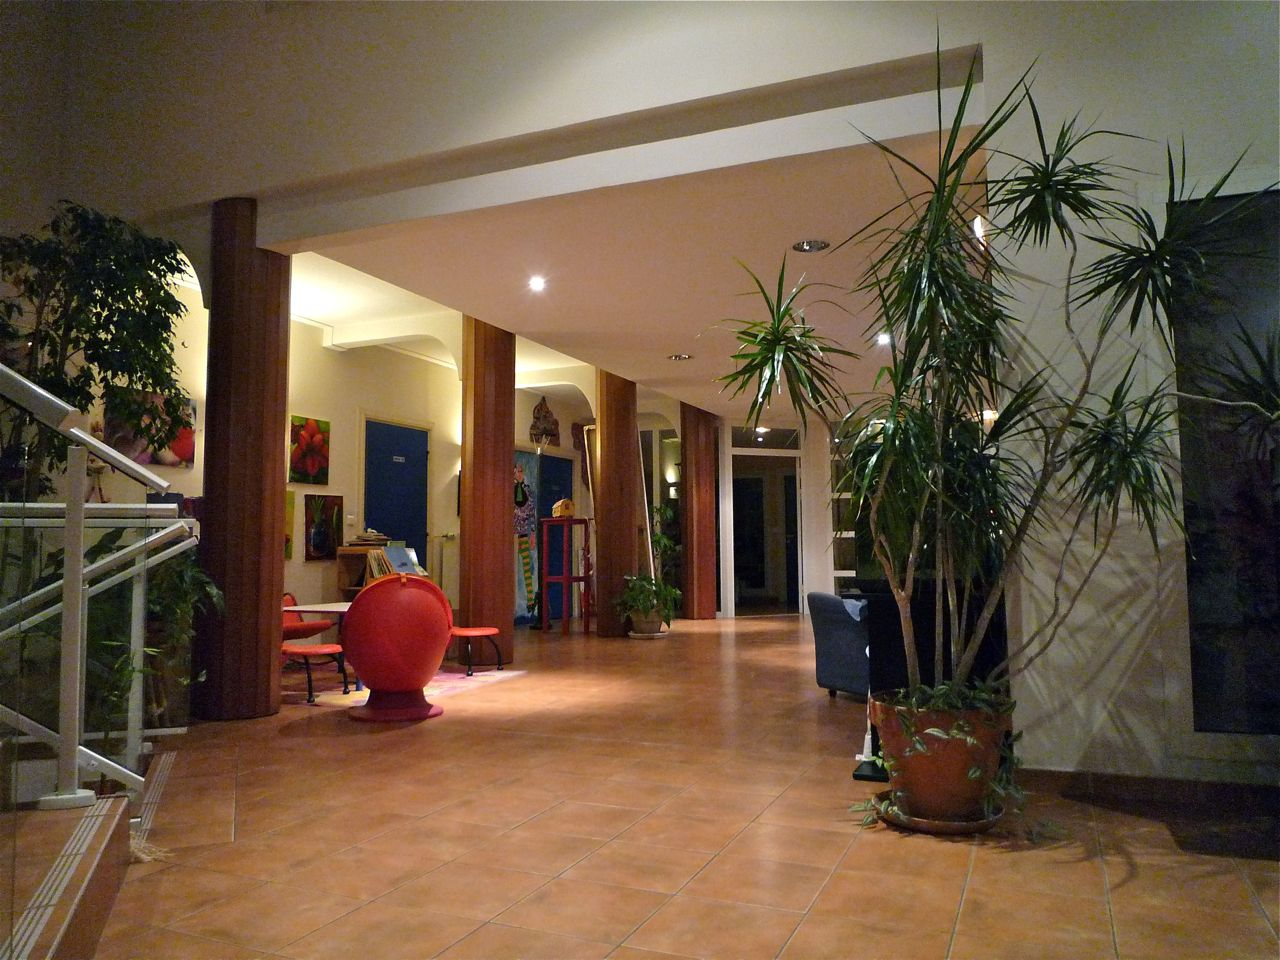 Entrance hall,  photography by Eric Breitbart